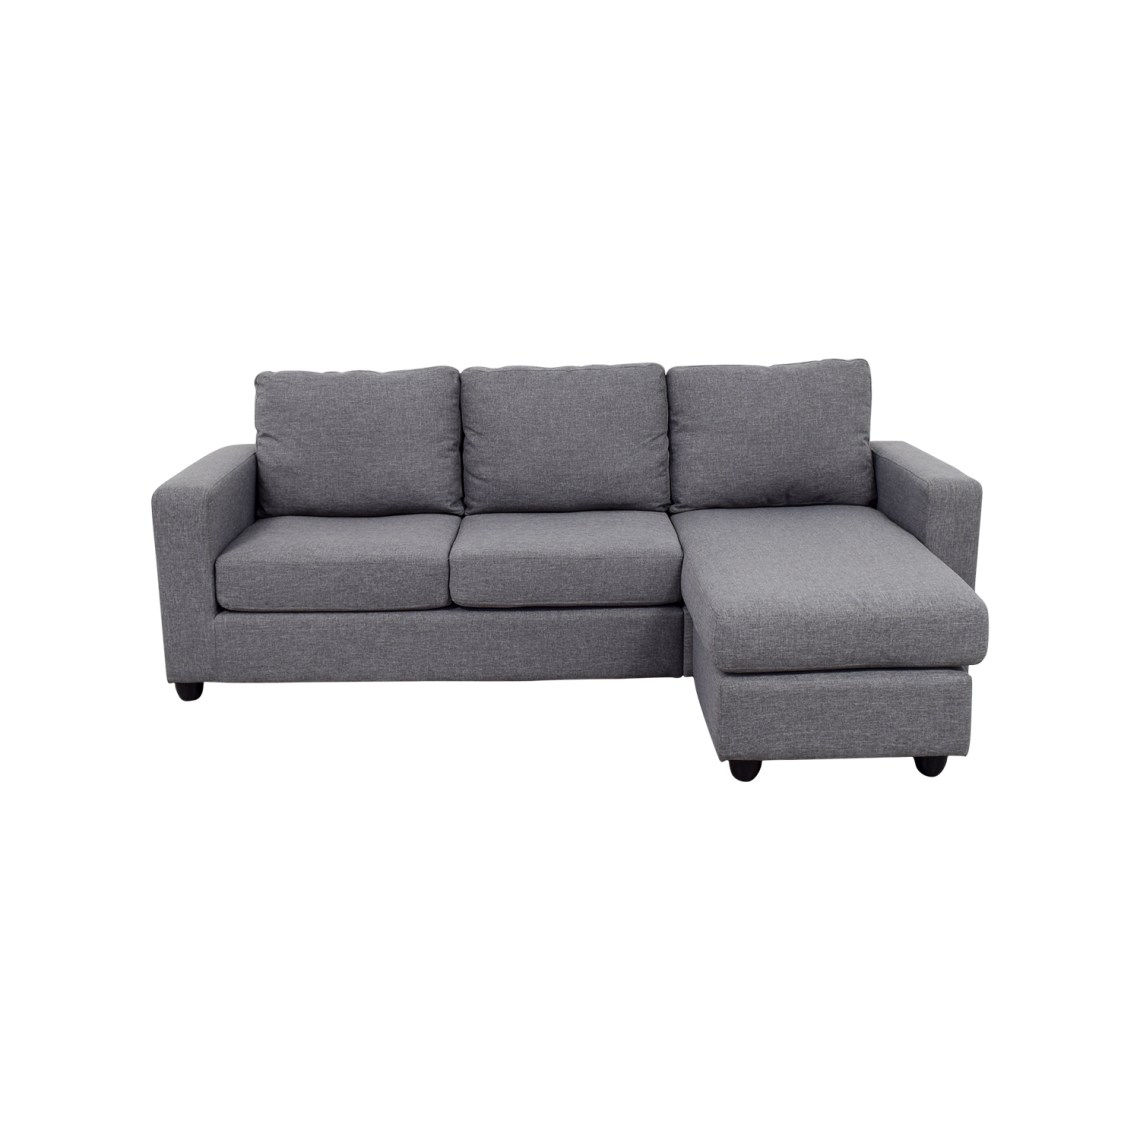 Image Result For Where To Buy Cheap Furniture Near Me